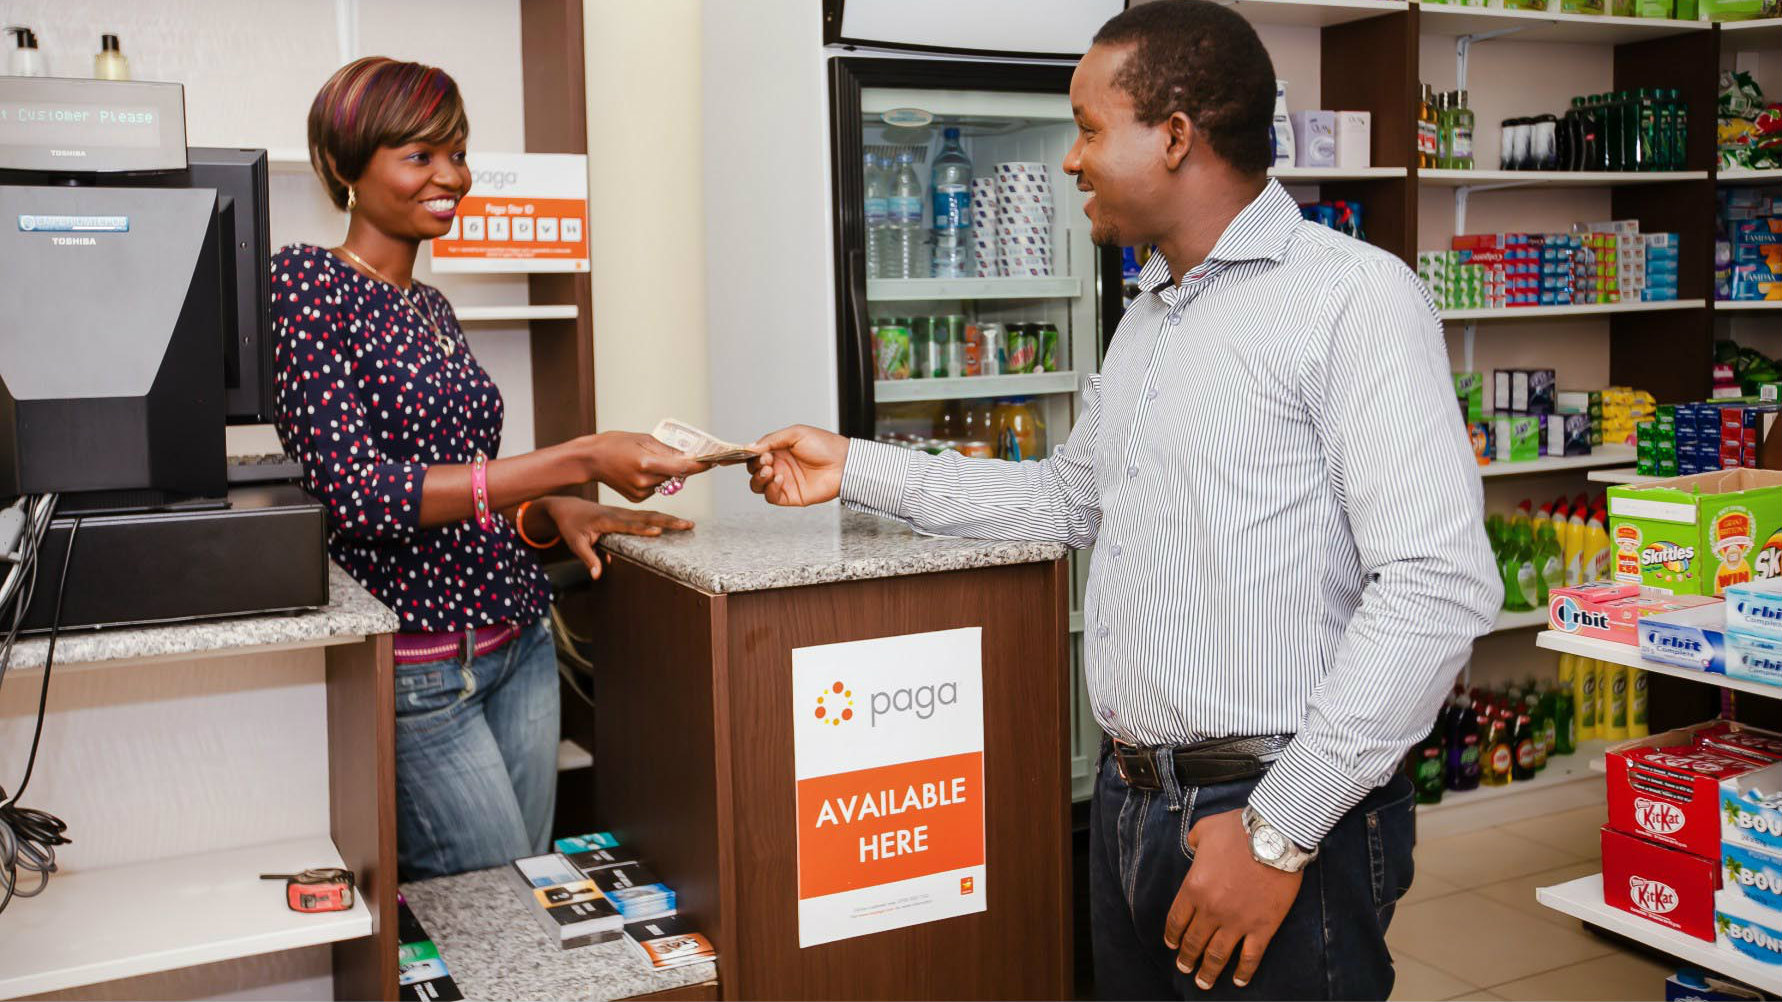 A Paga agent carrying a transaction at a local shop